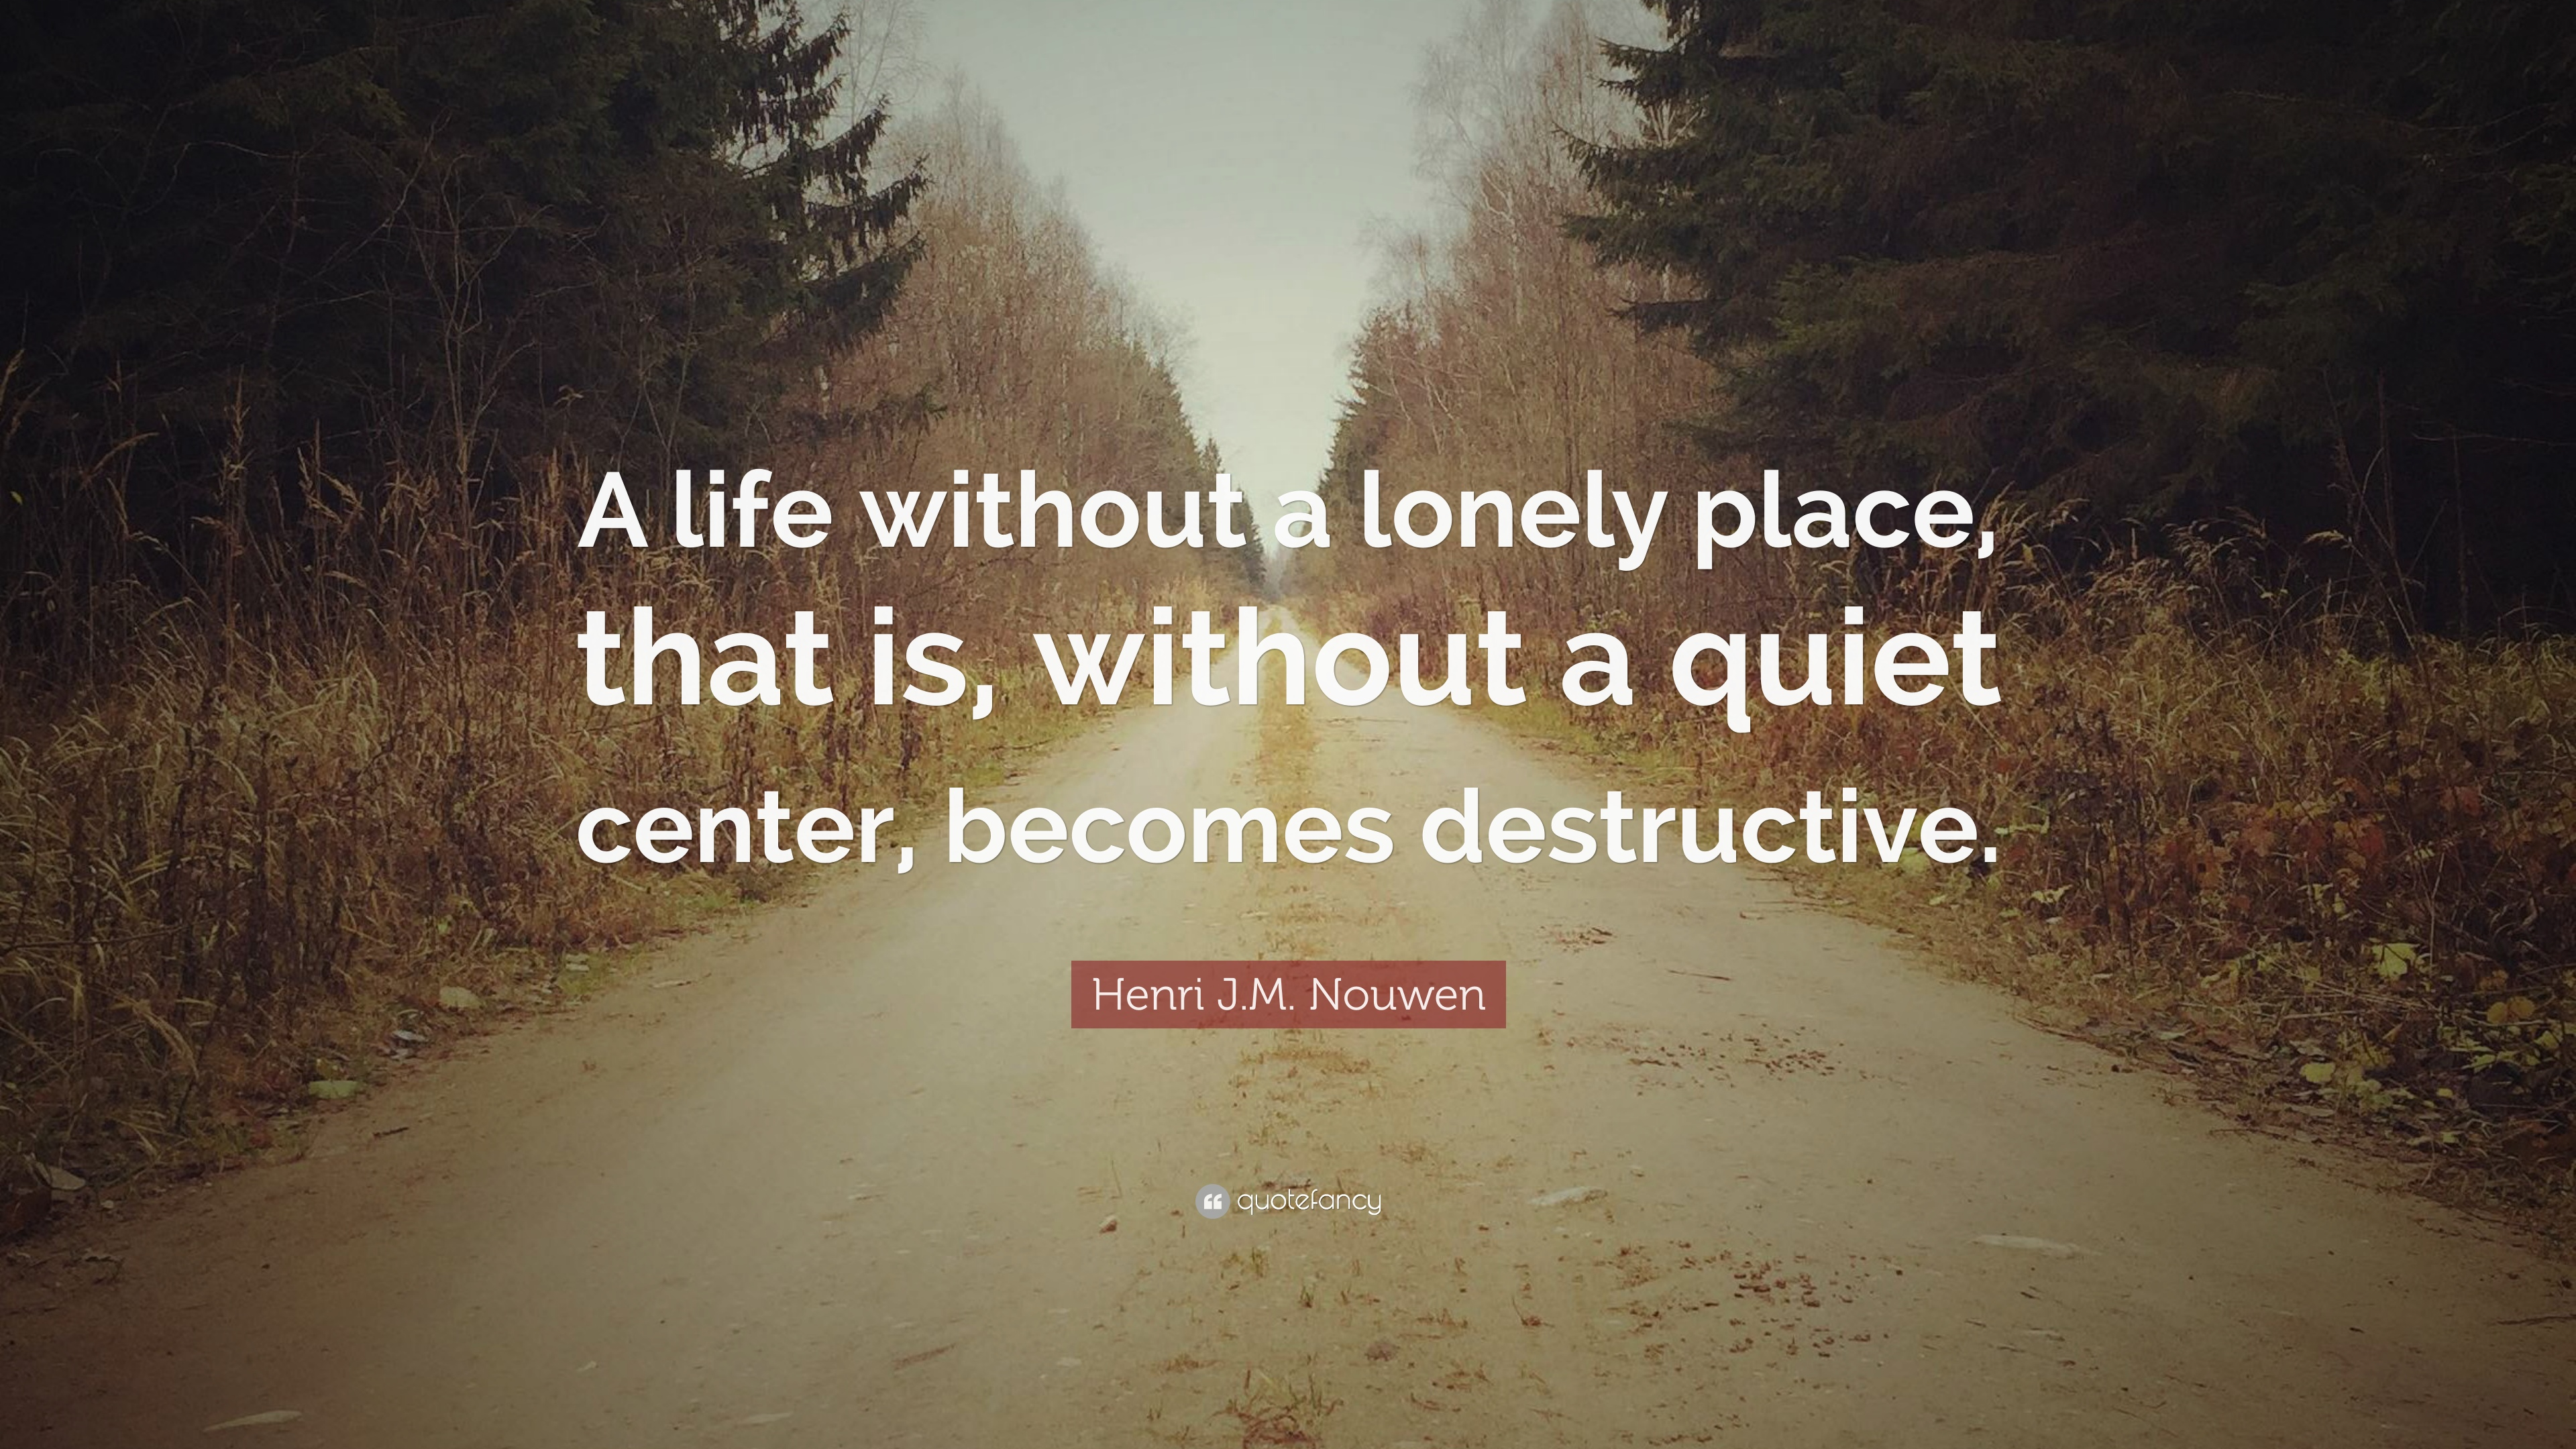 Henri Jm Nouwen Quote A Life Without A Lonely Place That Is